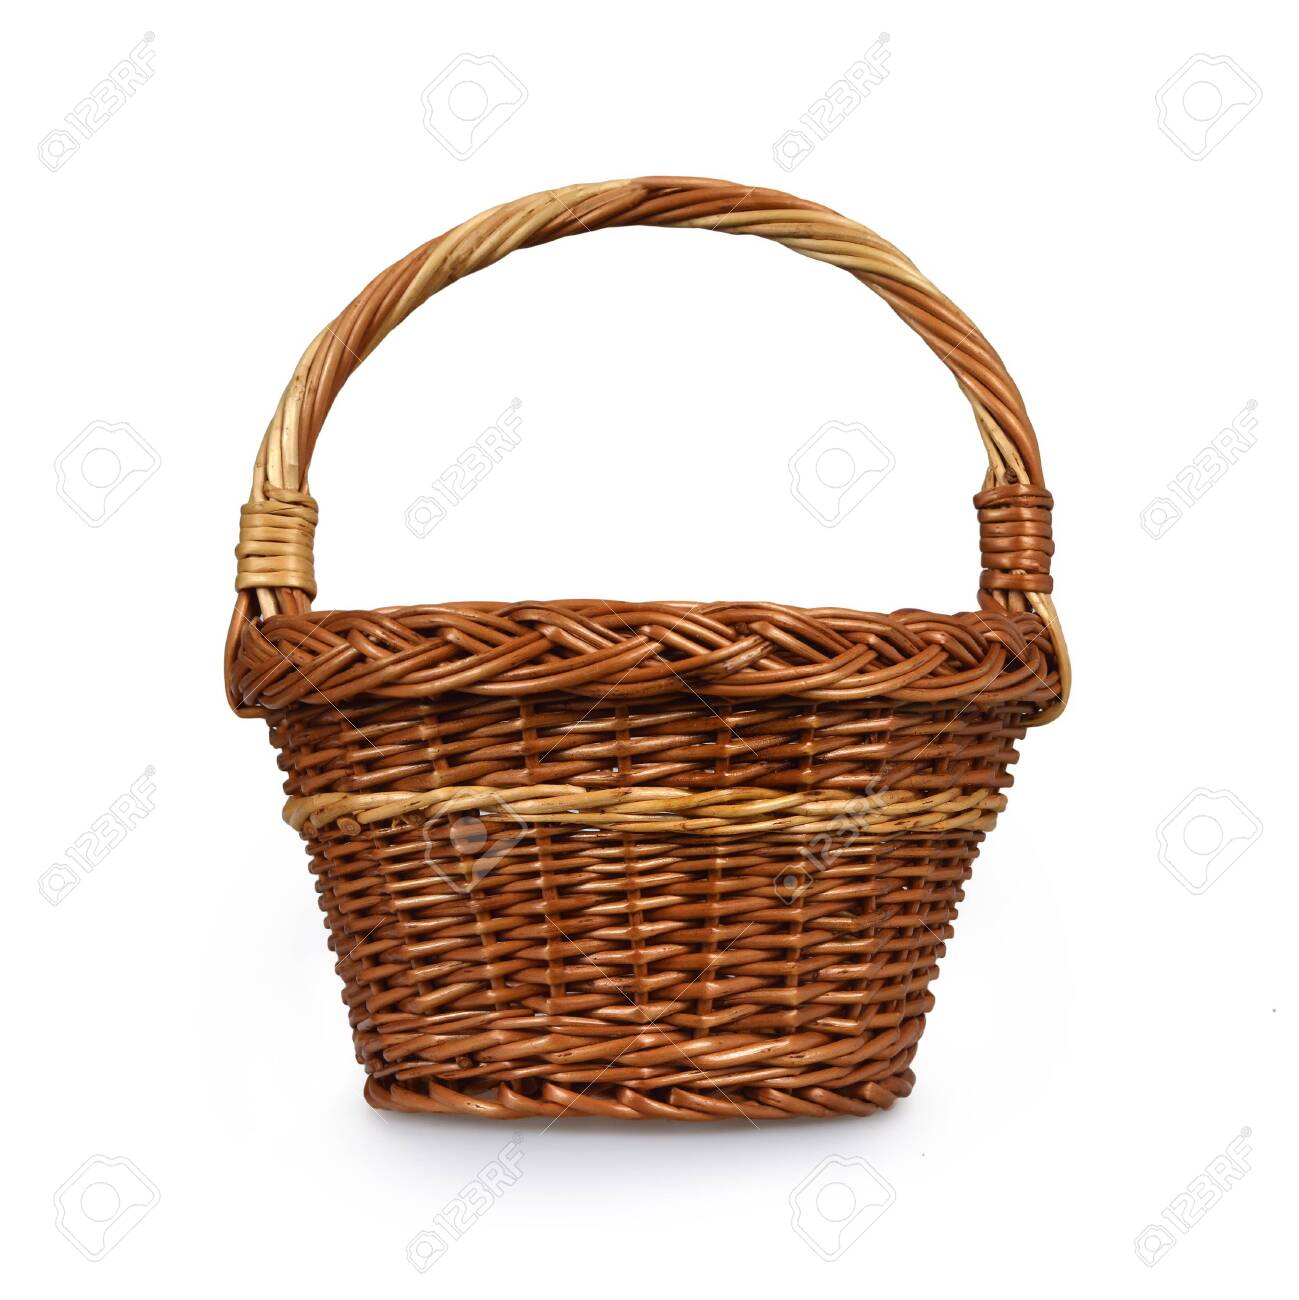 Wicker basket isolated on white background - 131820615